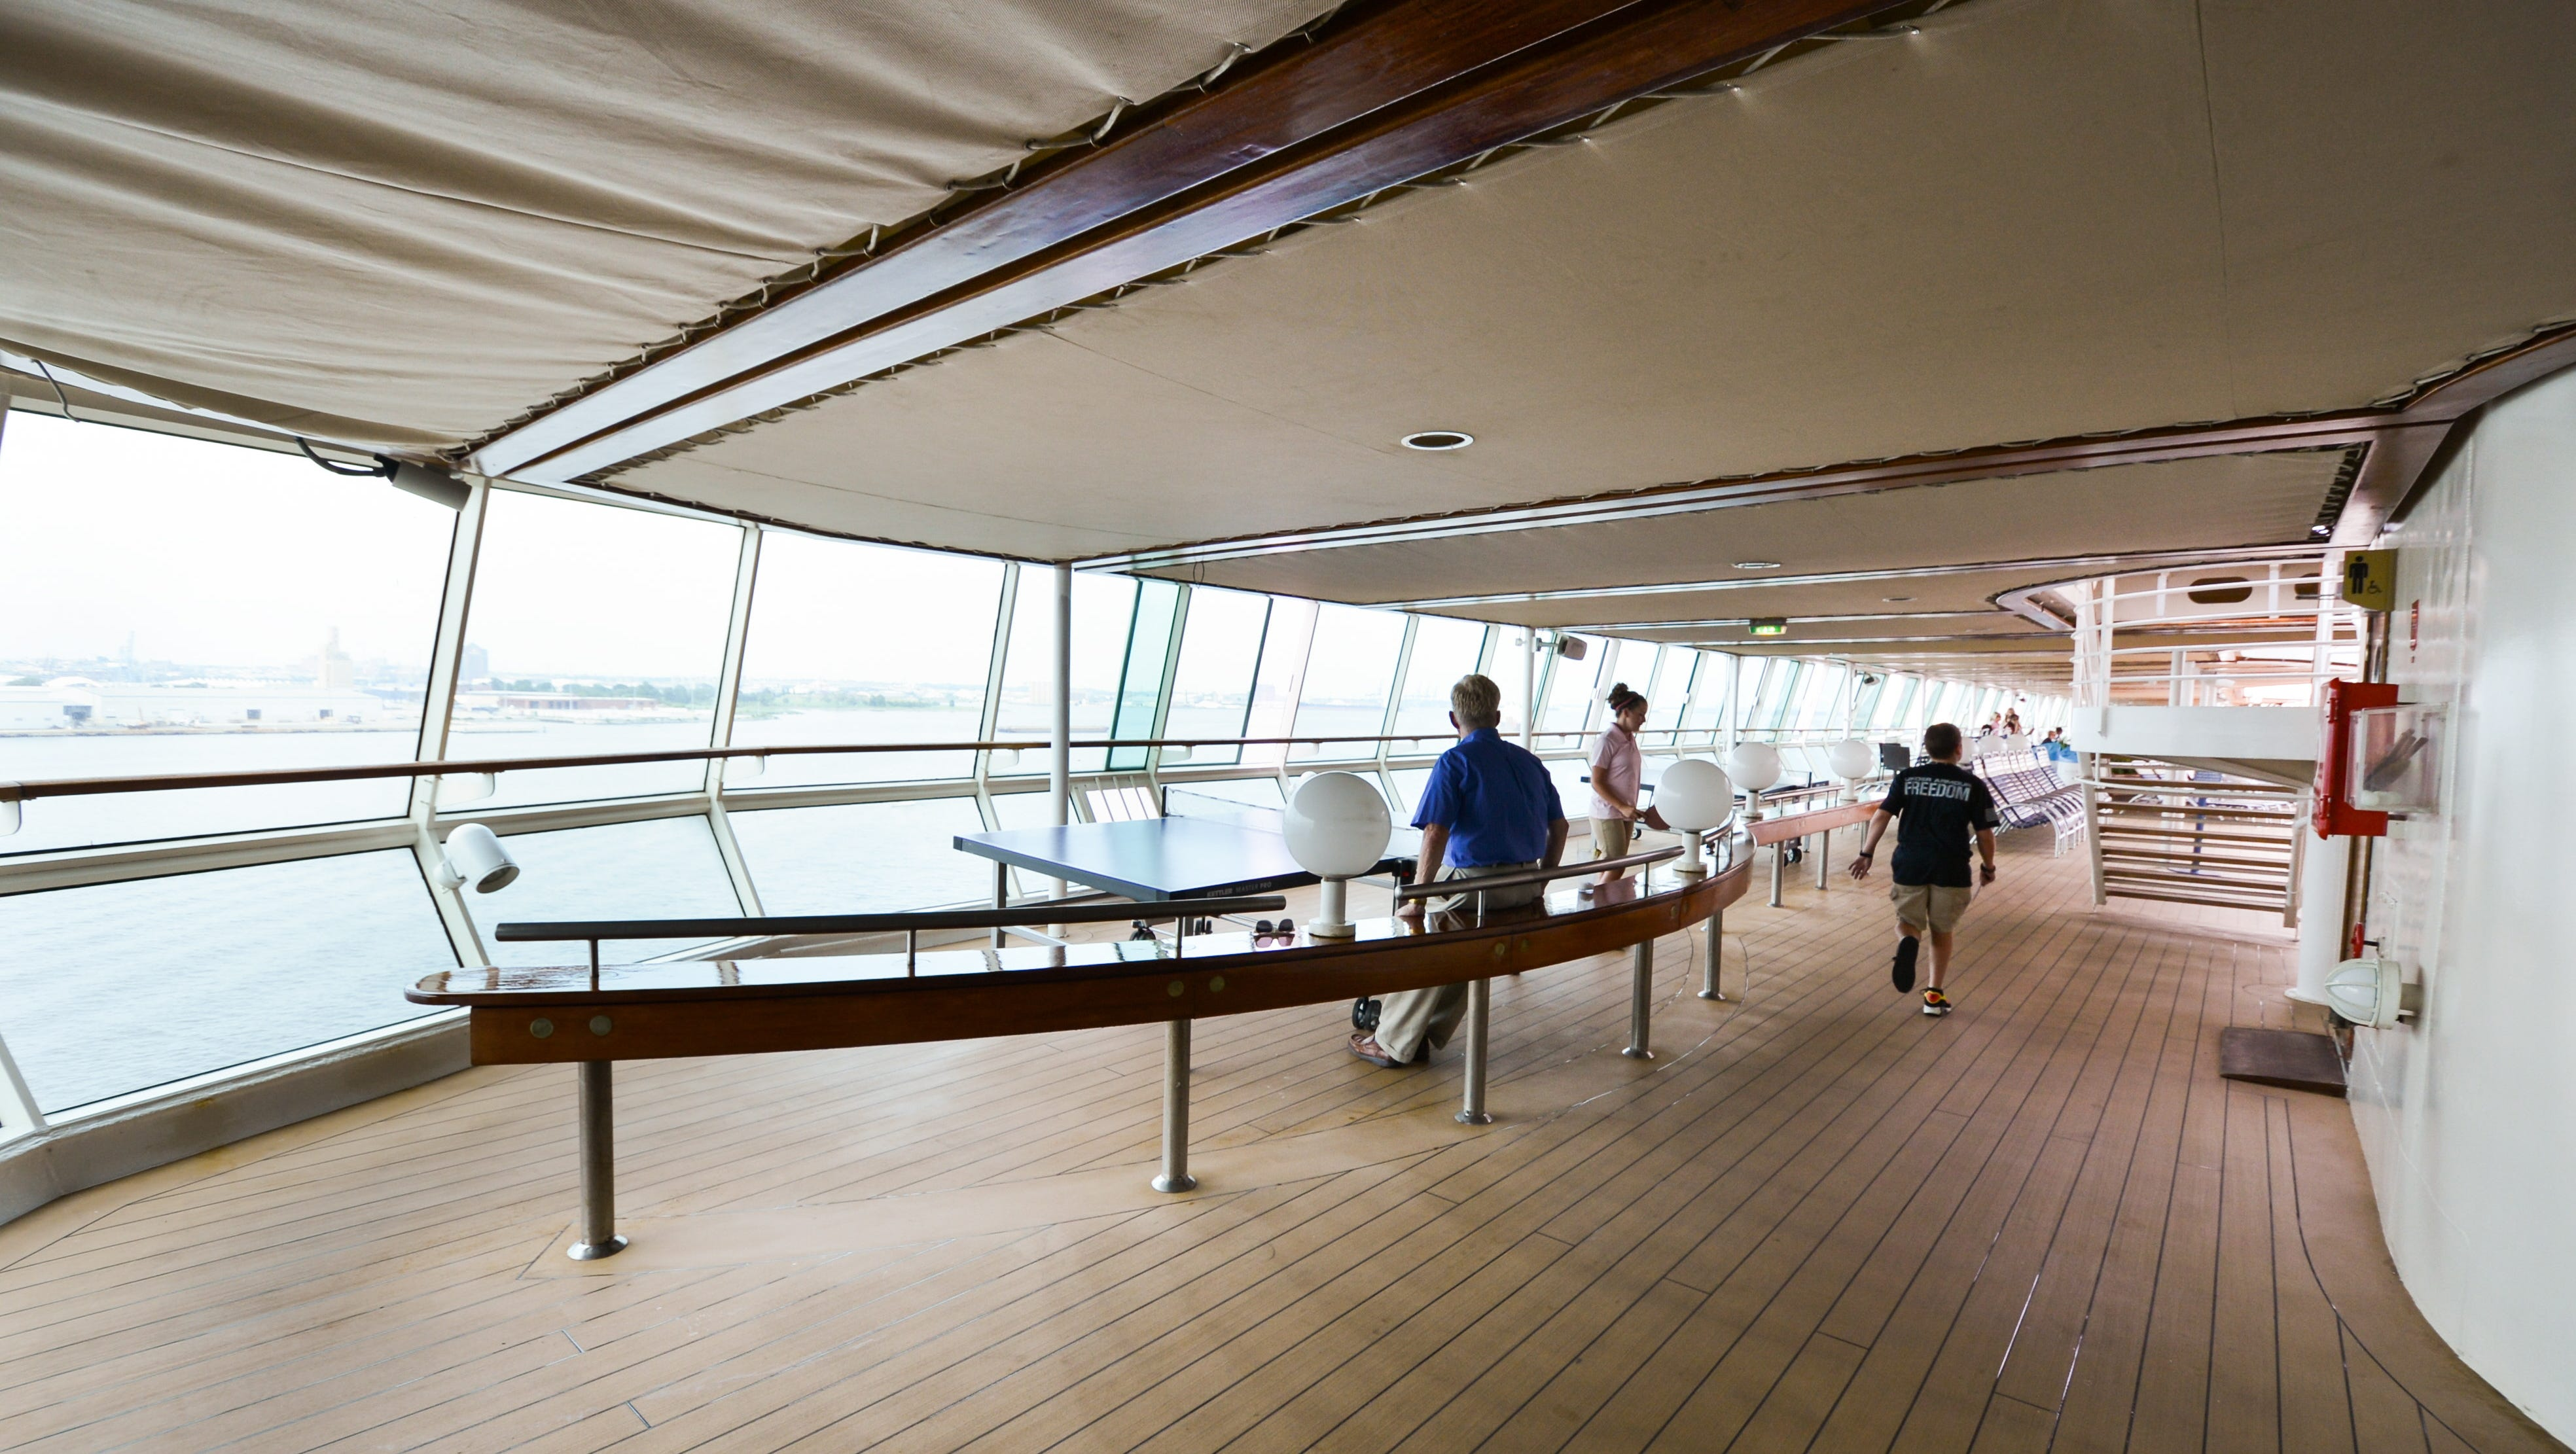 Top deck attractions on Grandeur of the Seas include ping-pong tables.